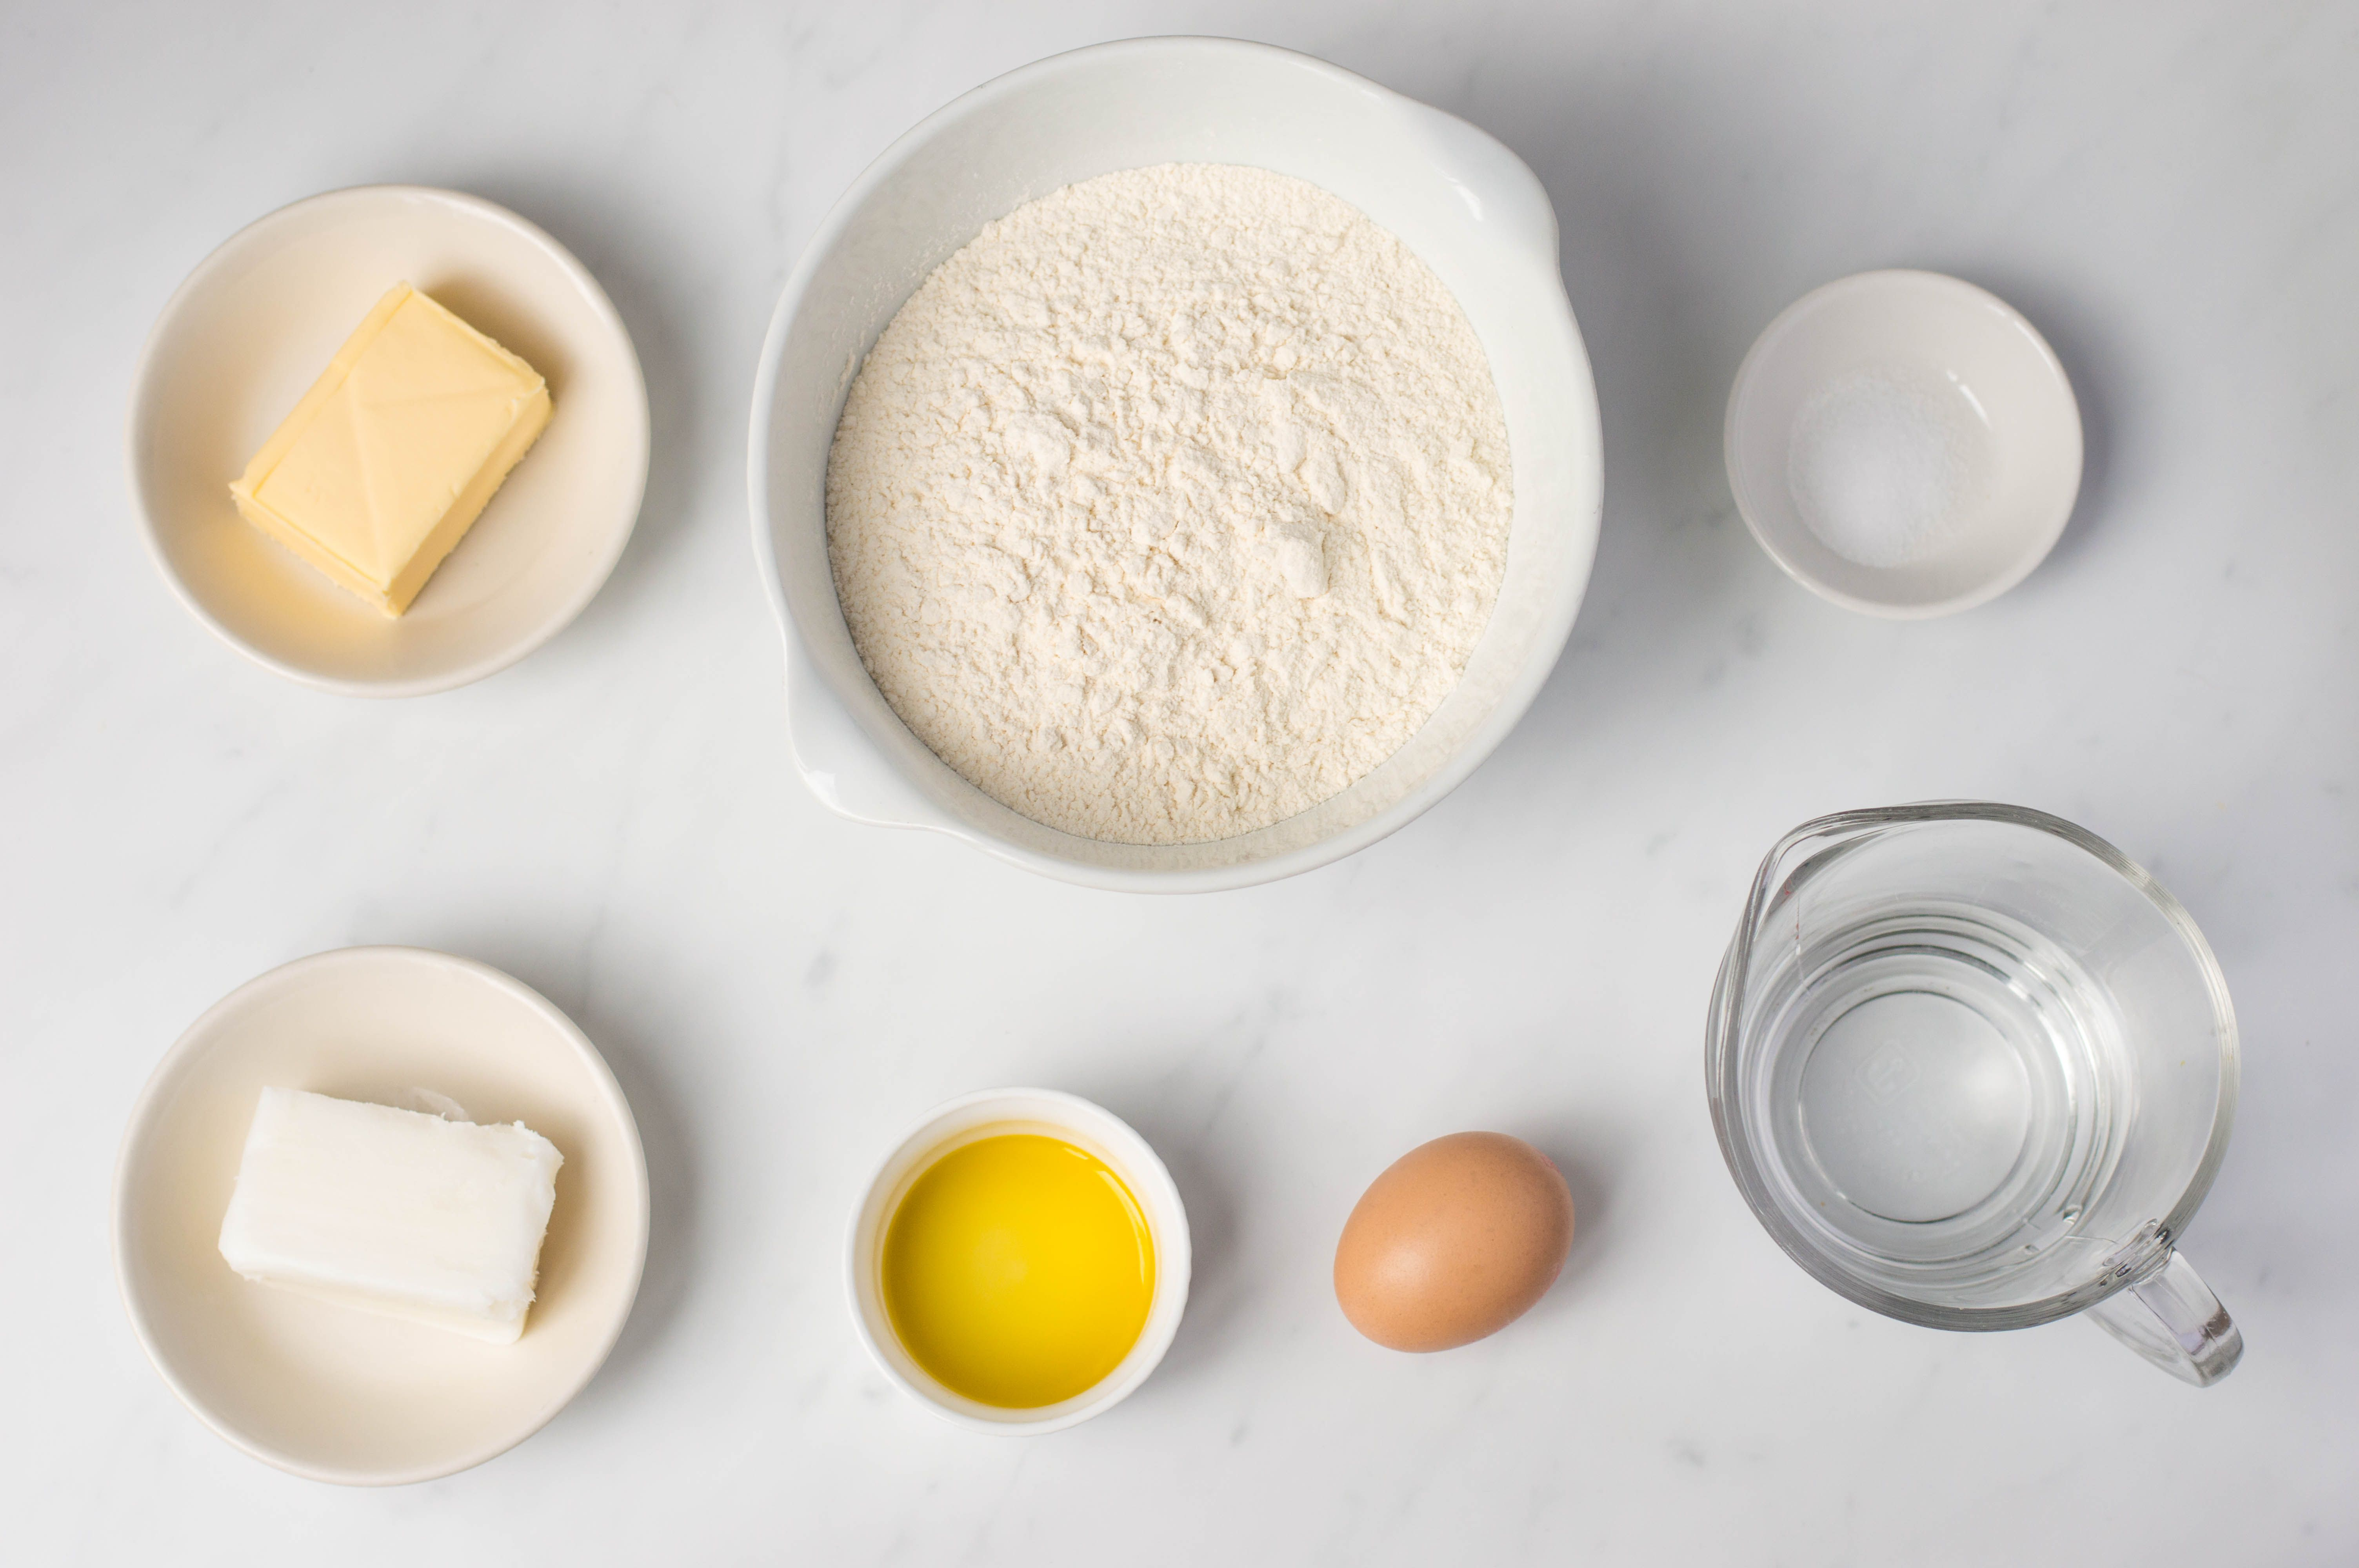 Ingredients for hot water pastry